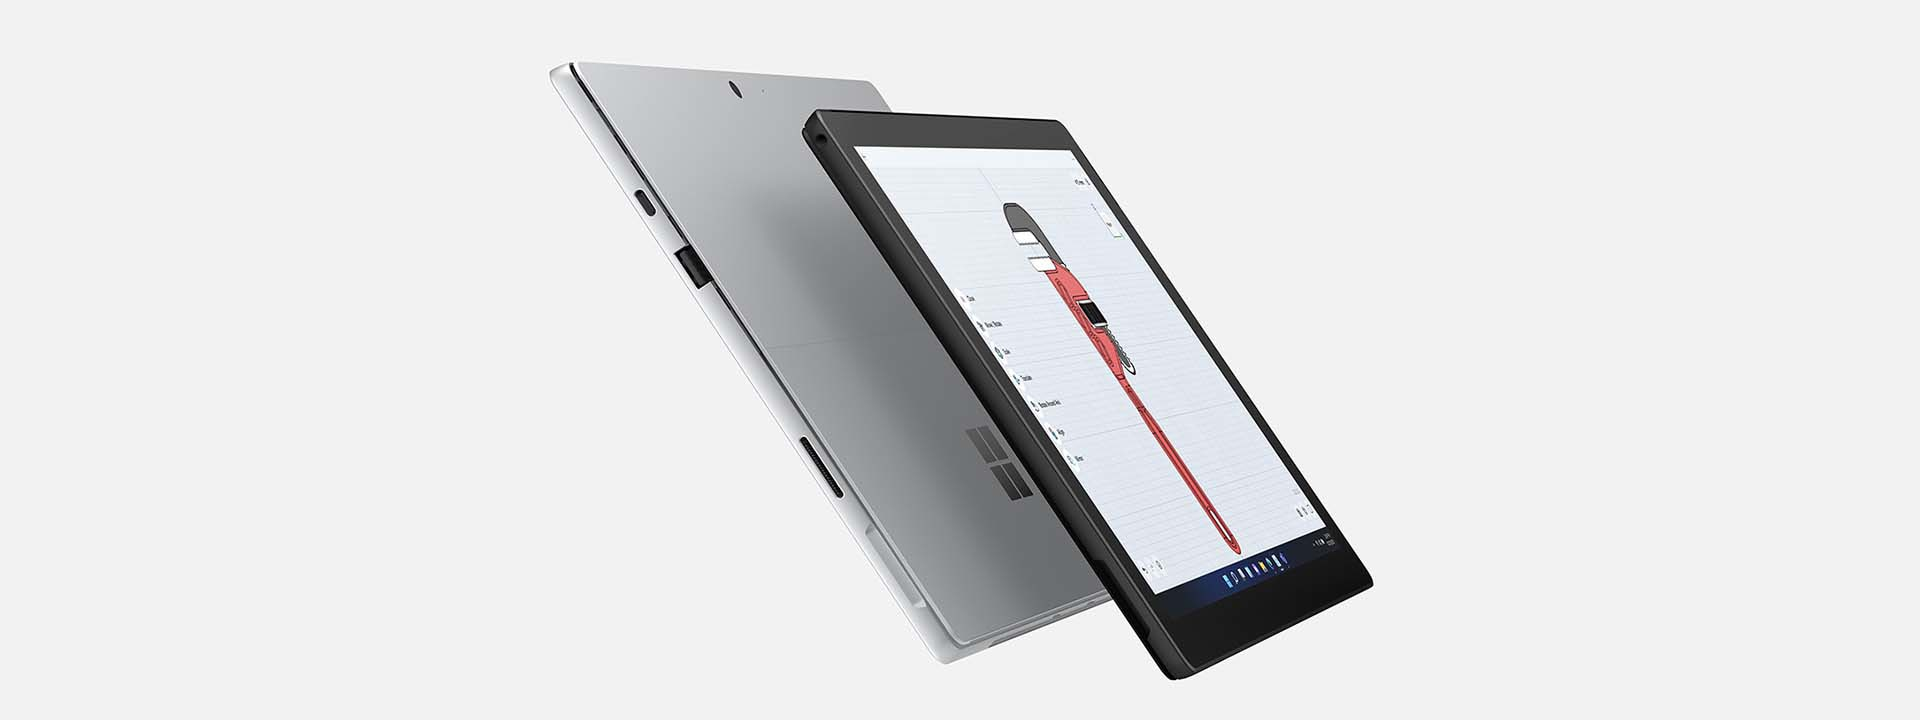 Two SurfacePro 7+ devices seen back-to-back with increased battery life